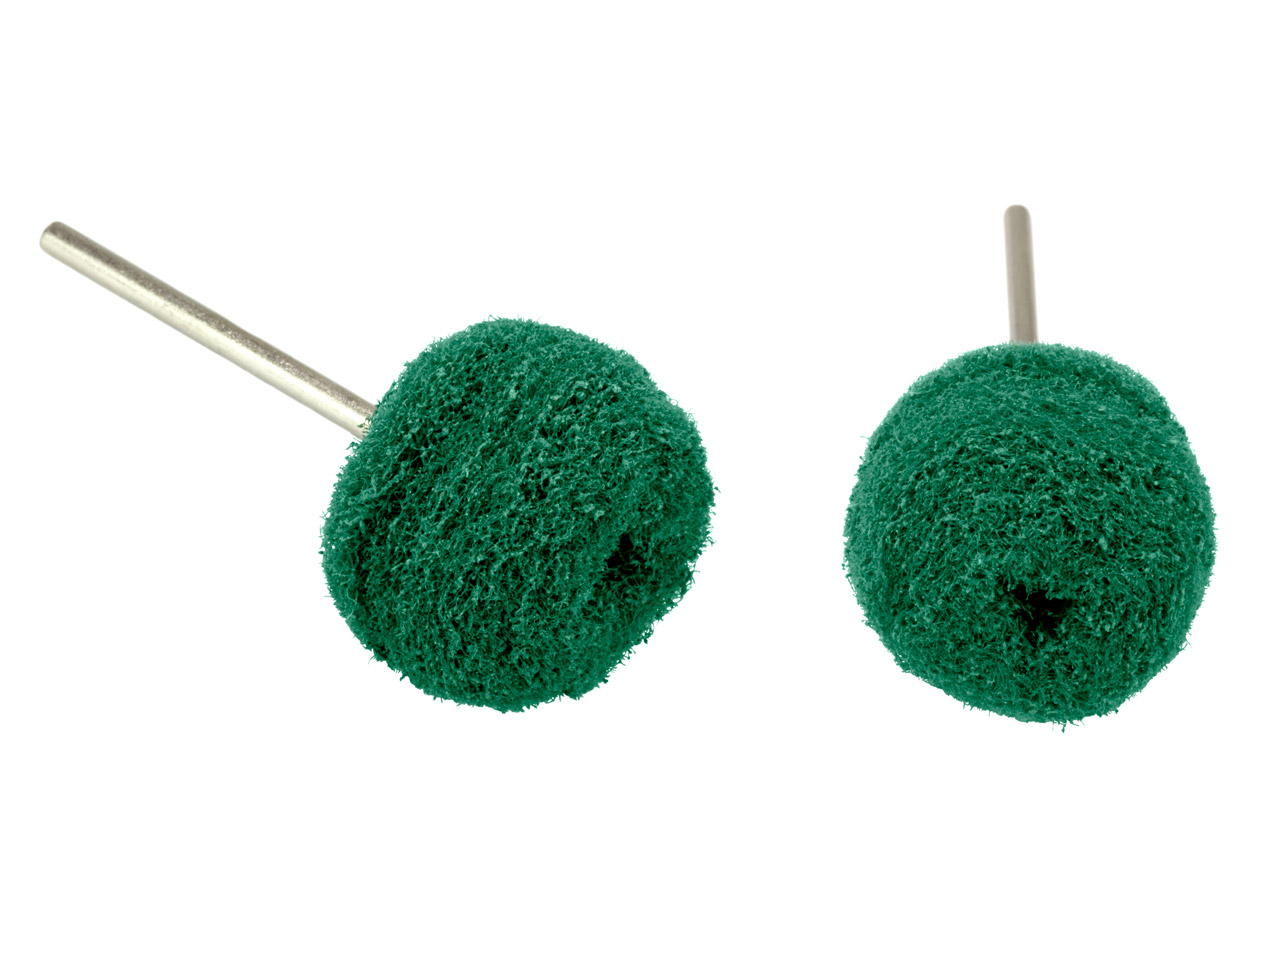 Abrasive Nylon Buffing Balls Green - Medium 22mm